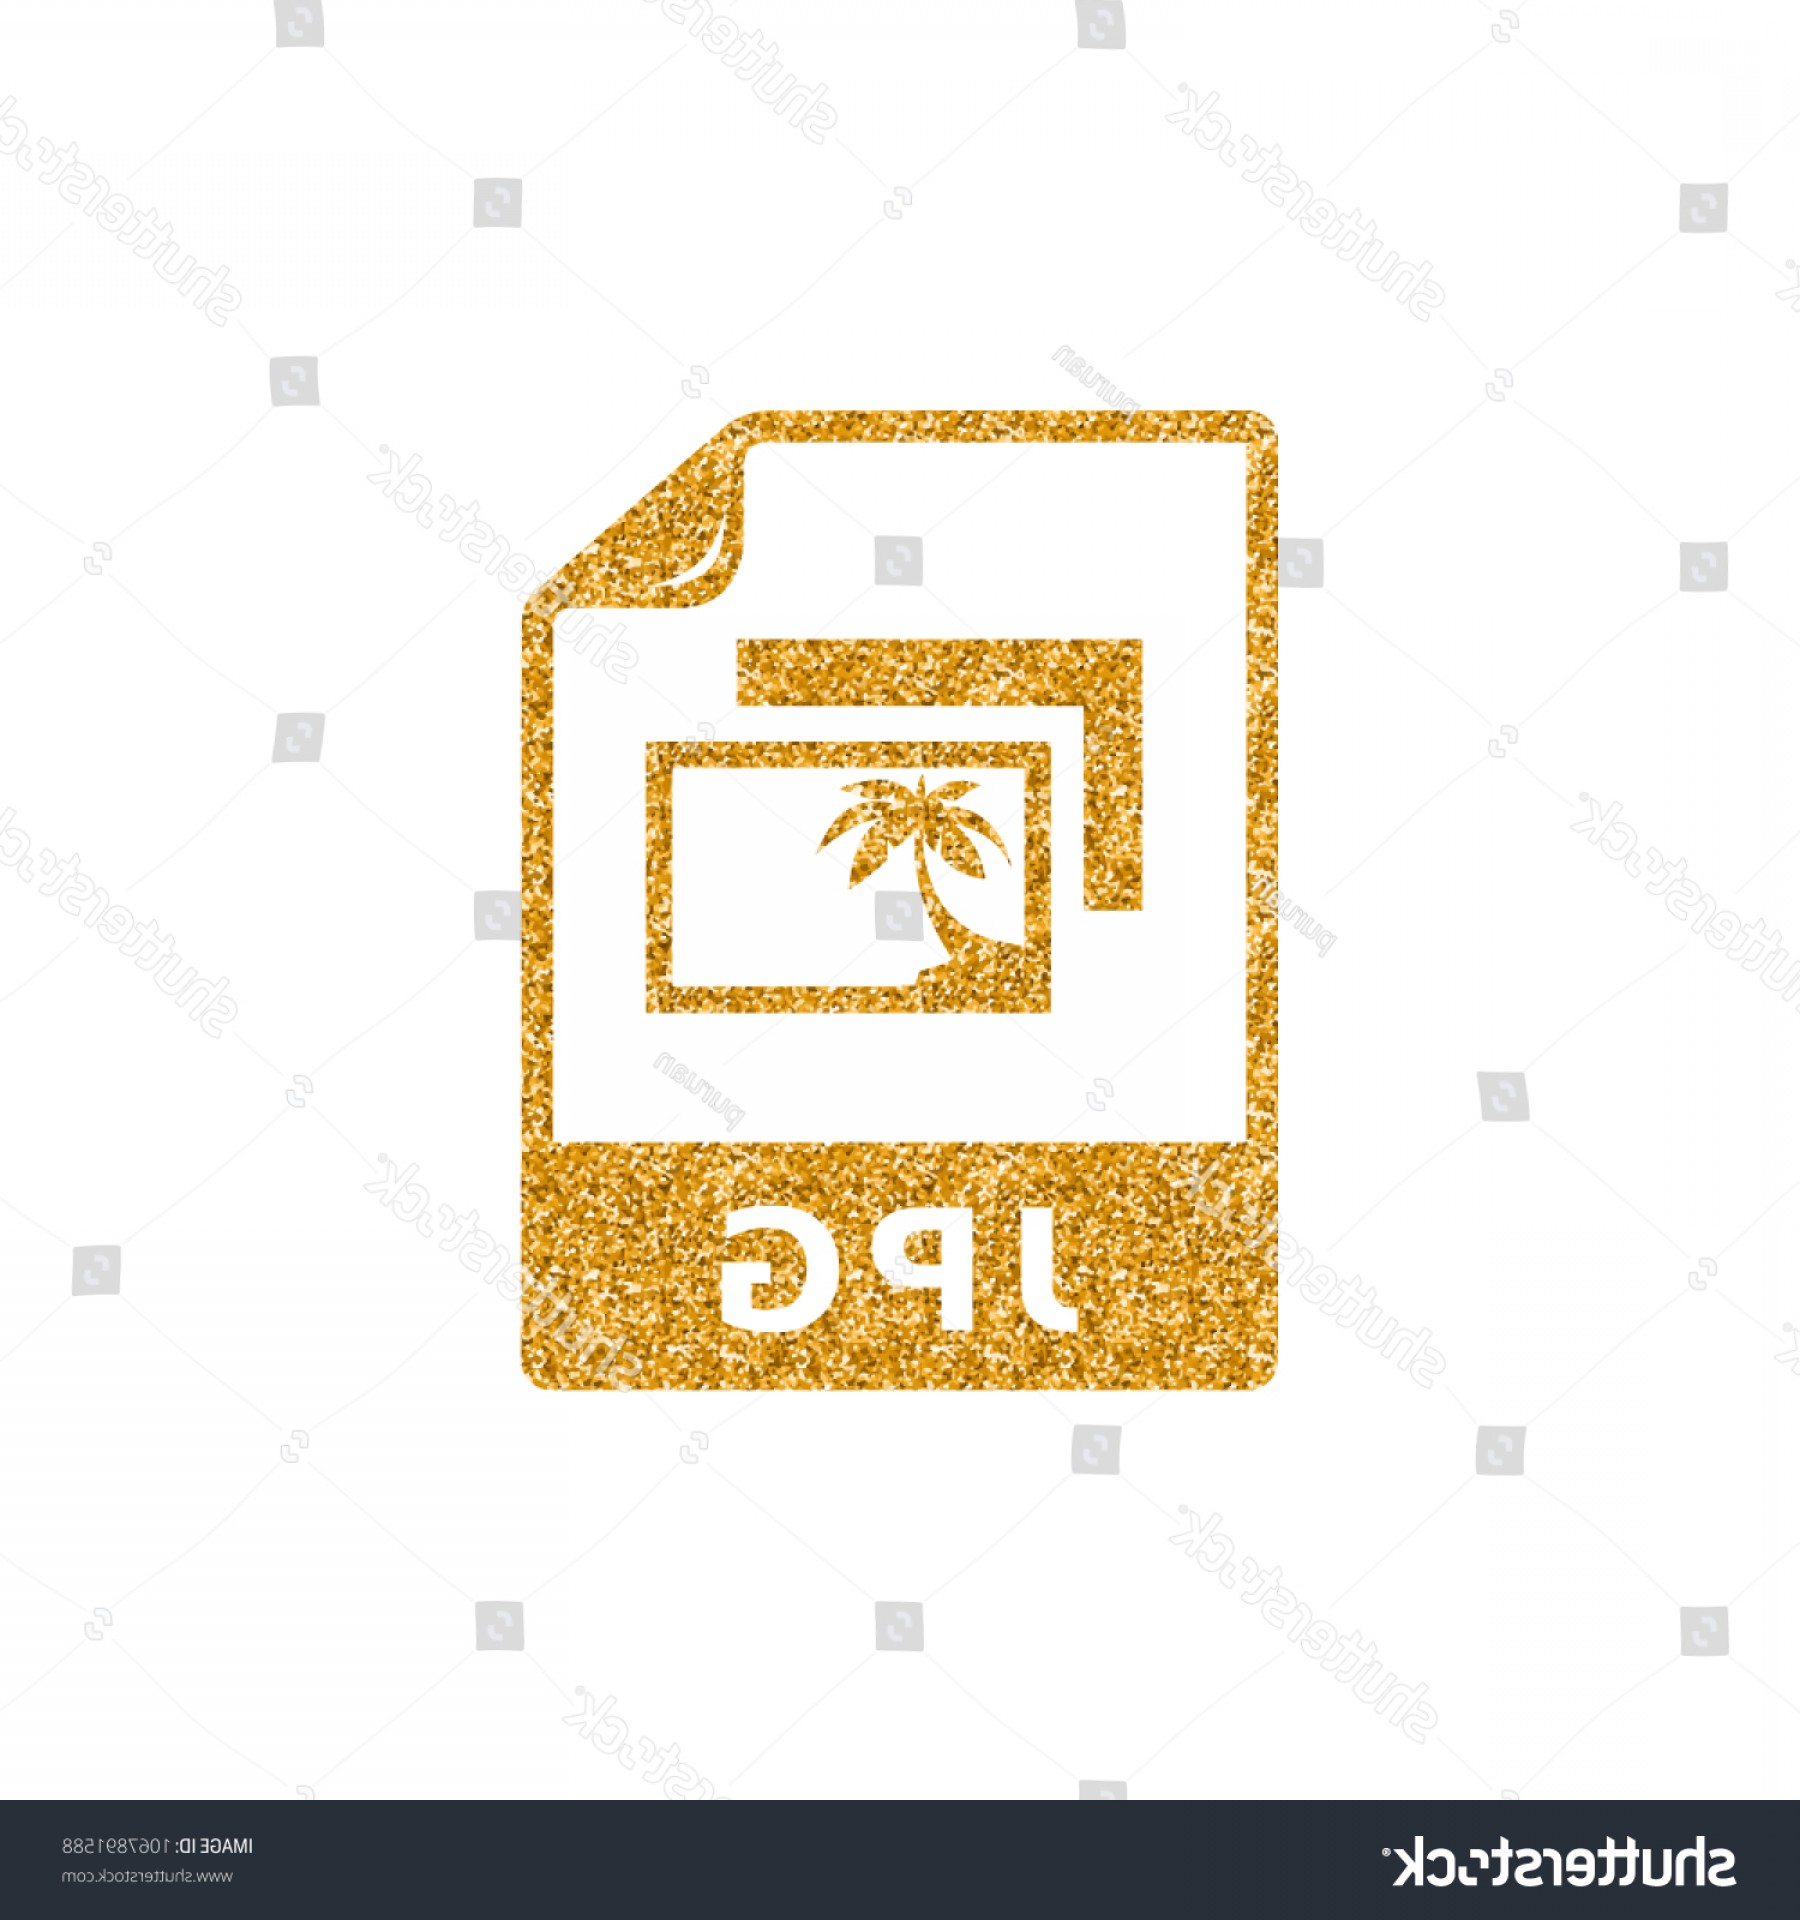 File Formats Vector Artwork: Picture File Format Icon Gold Glitter